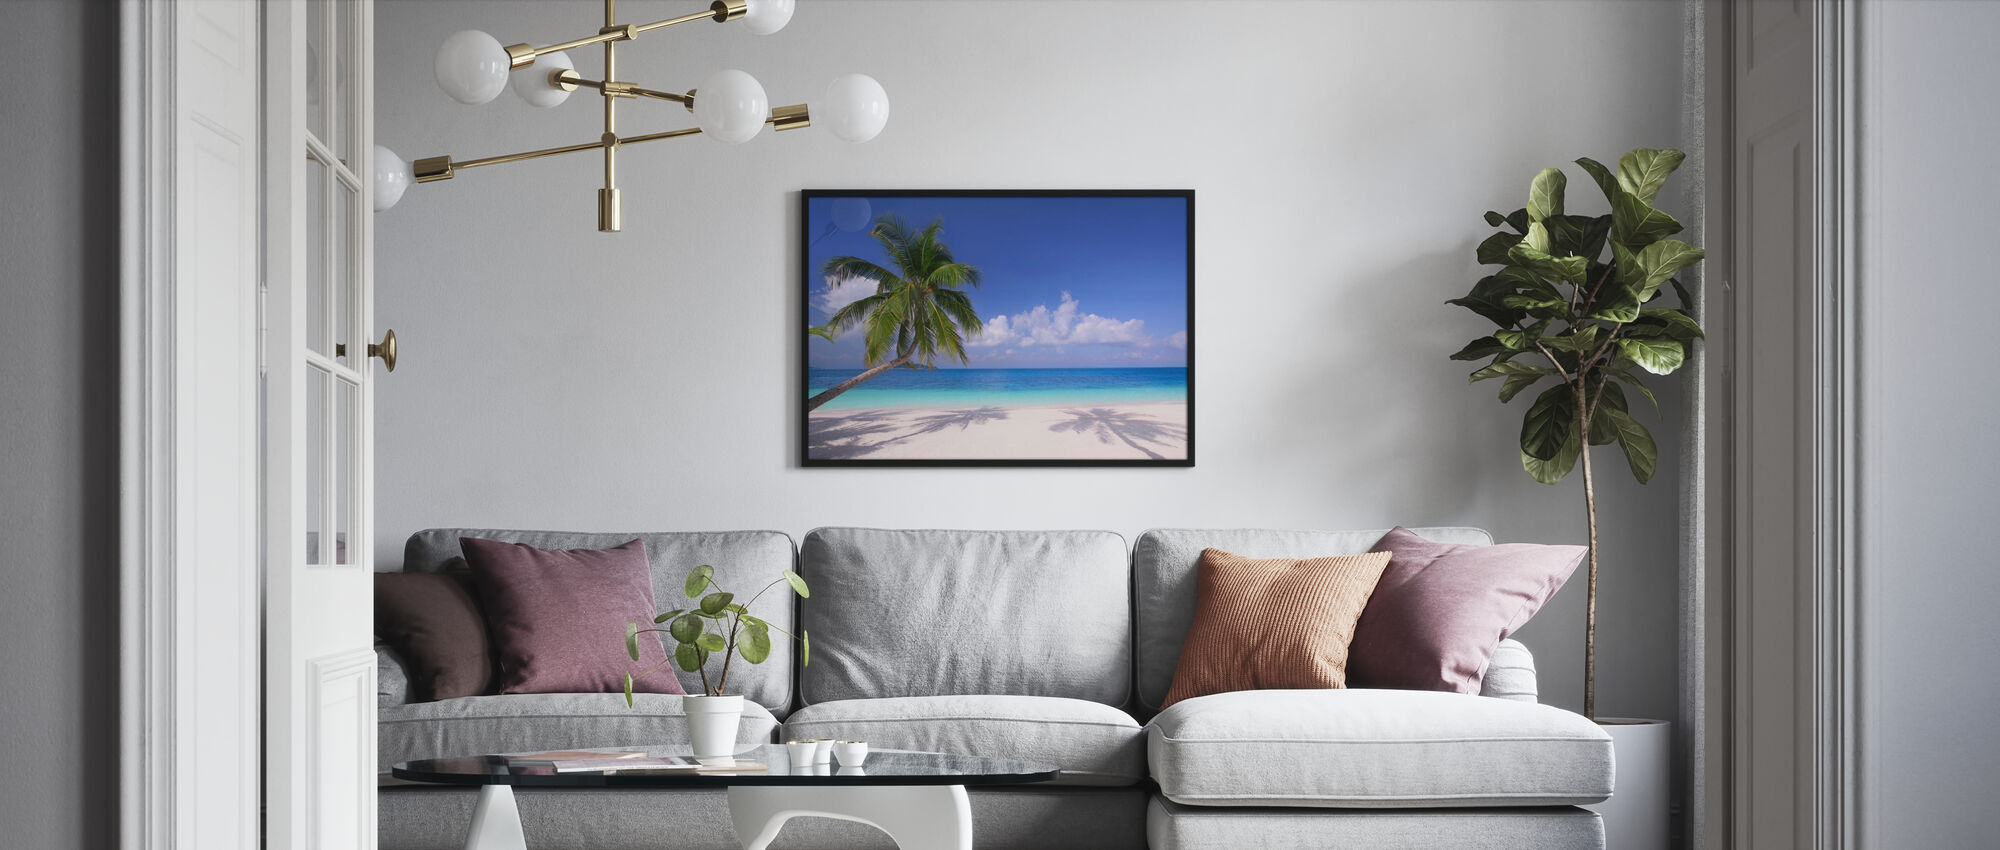 Island Paradise - Poster - Living Room